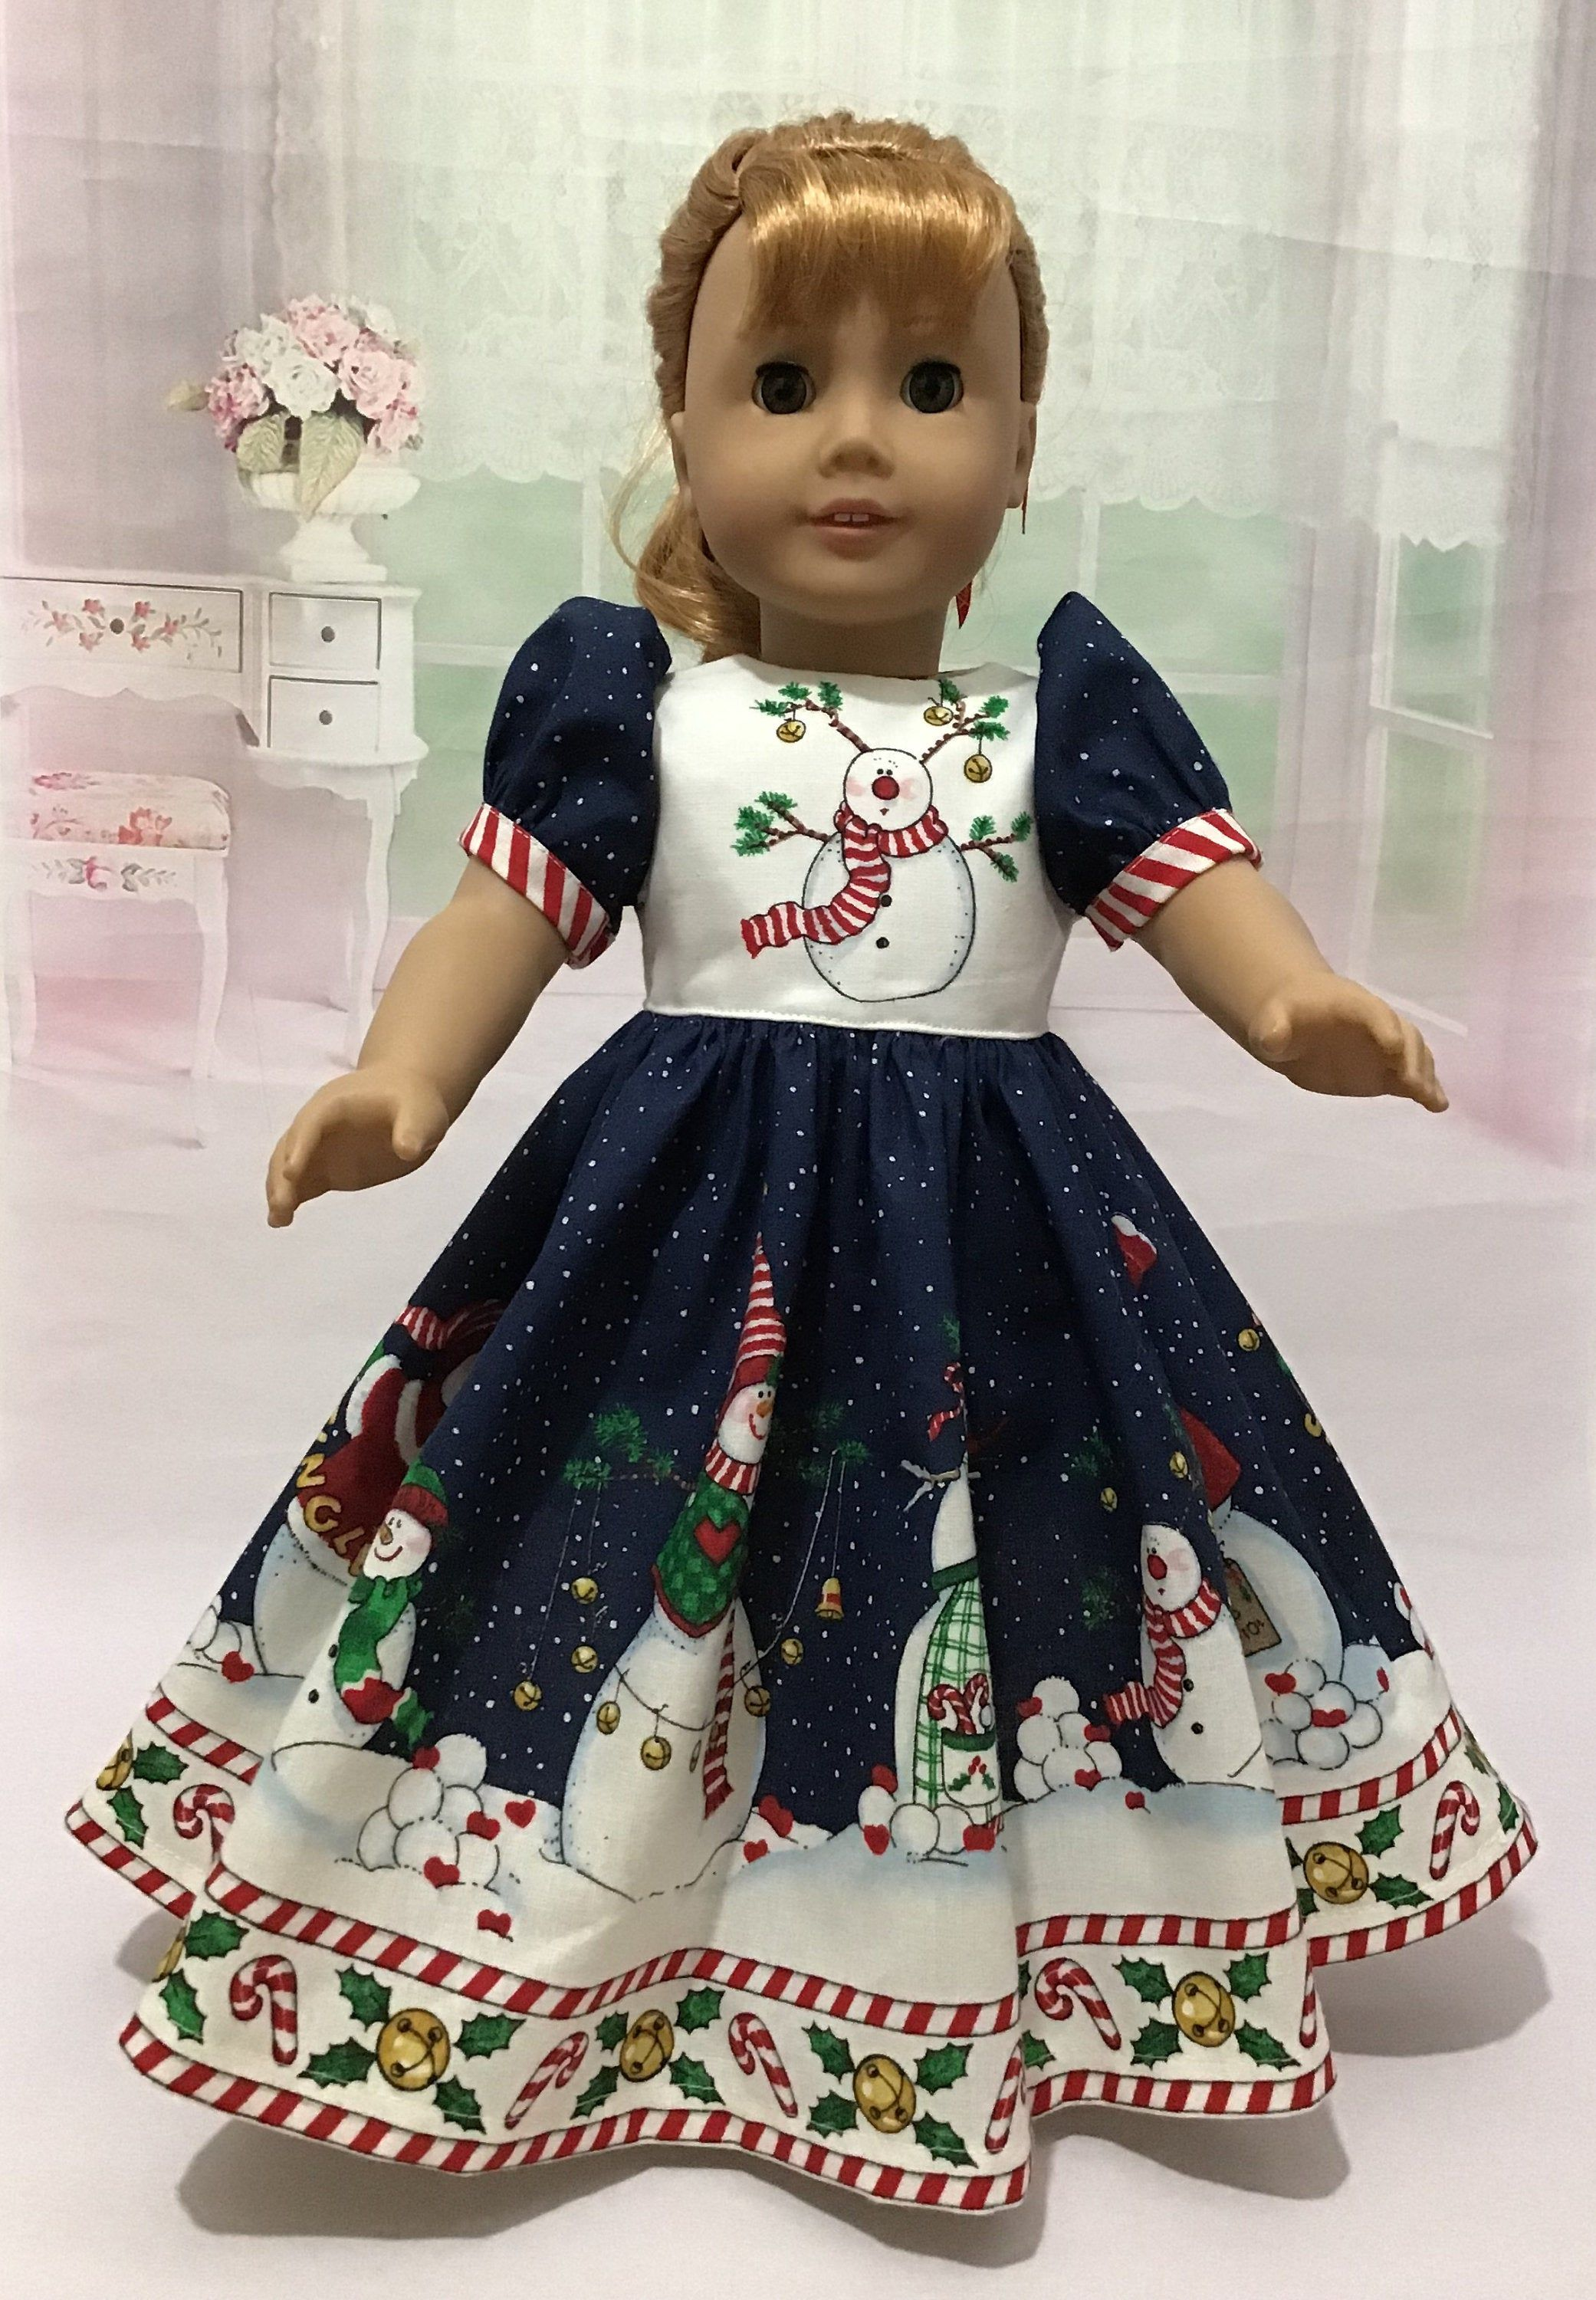 18 inch doll Christmas dress. Fits American Girl Dolls. Daisy Kingdom Heaven and Nature Sing border print #18inchdollsandclothes